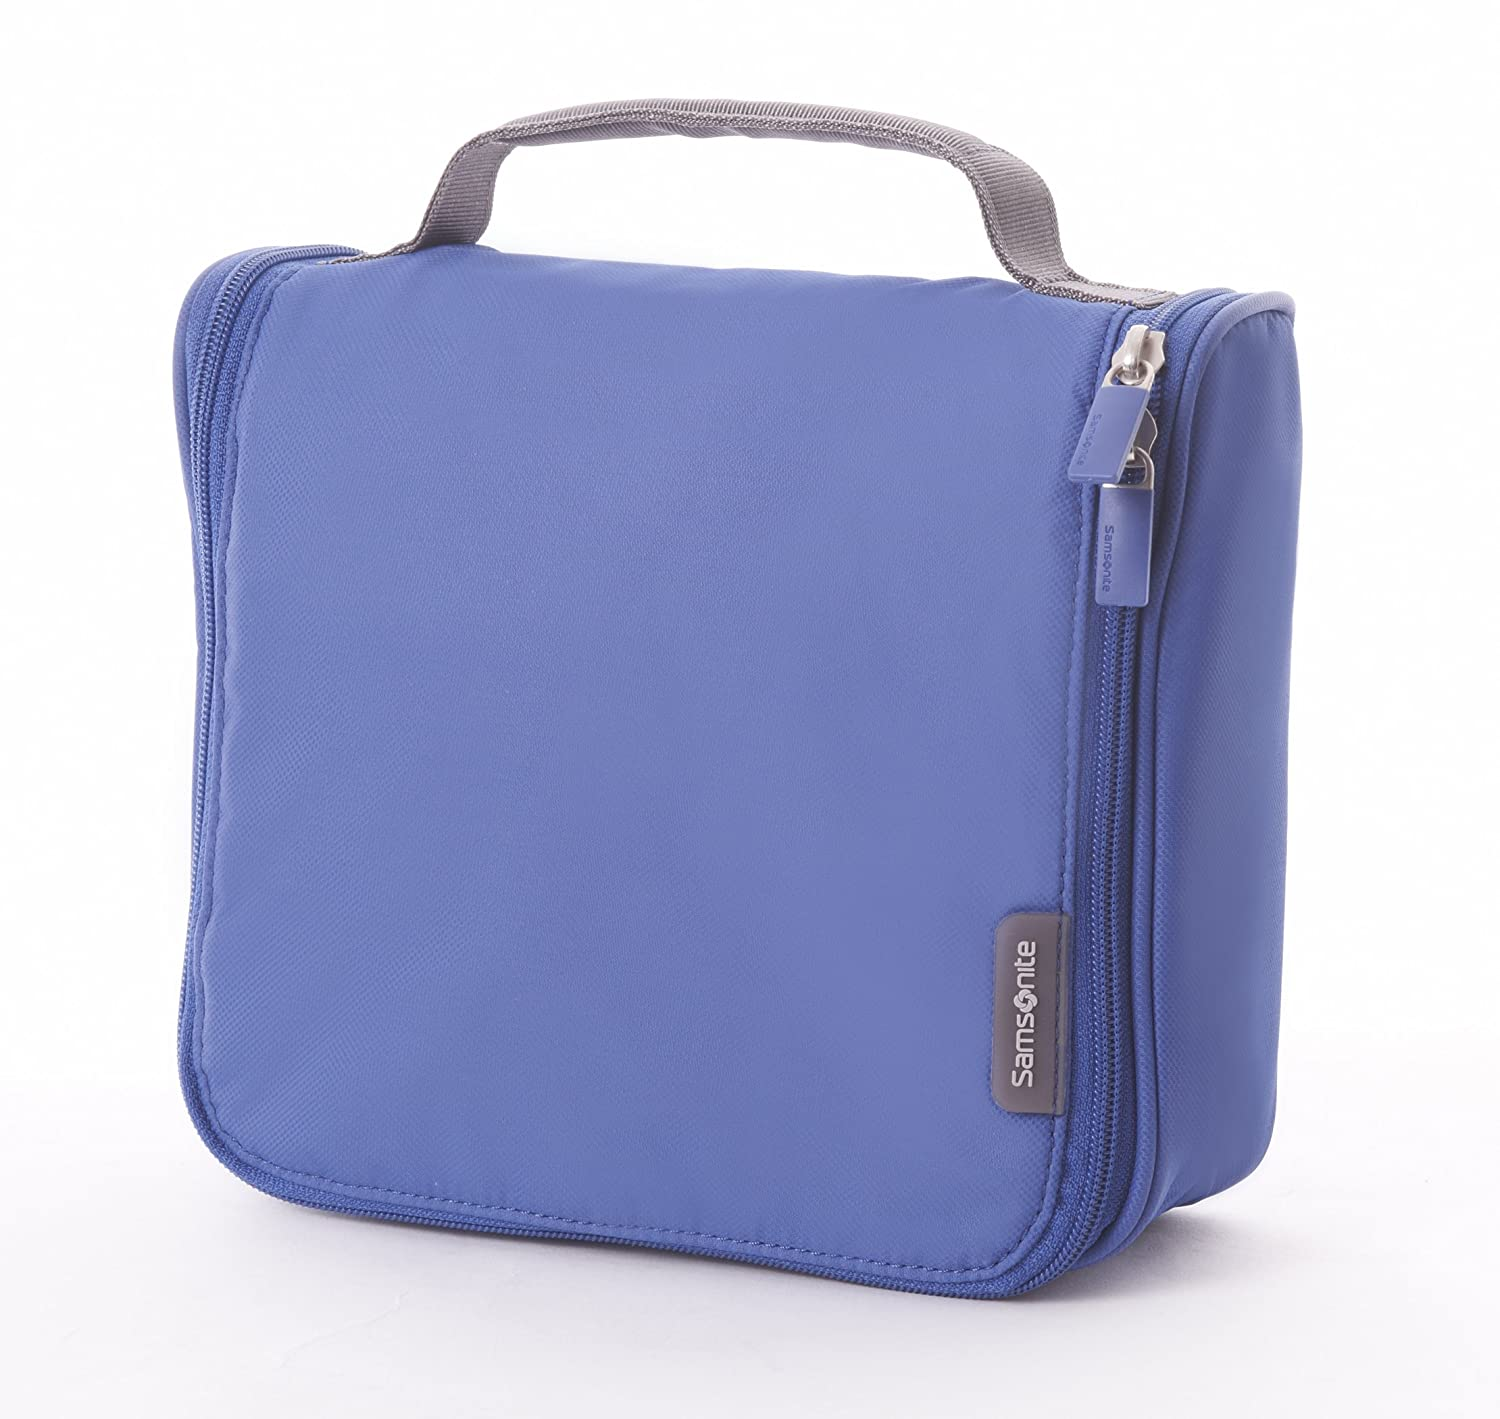 Samsonite 51748-1090 Hanging Toiletry Kit (W/Removable 3-1-1 Pouch), Blue, International Carry-On Samsonite Corporation - CA